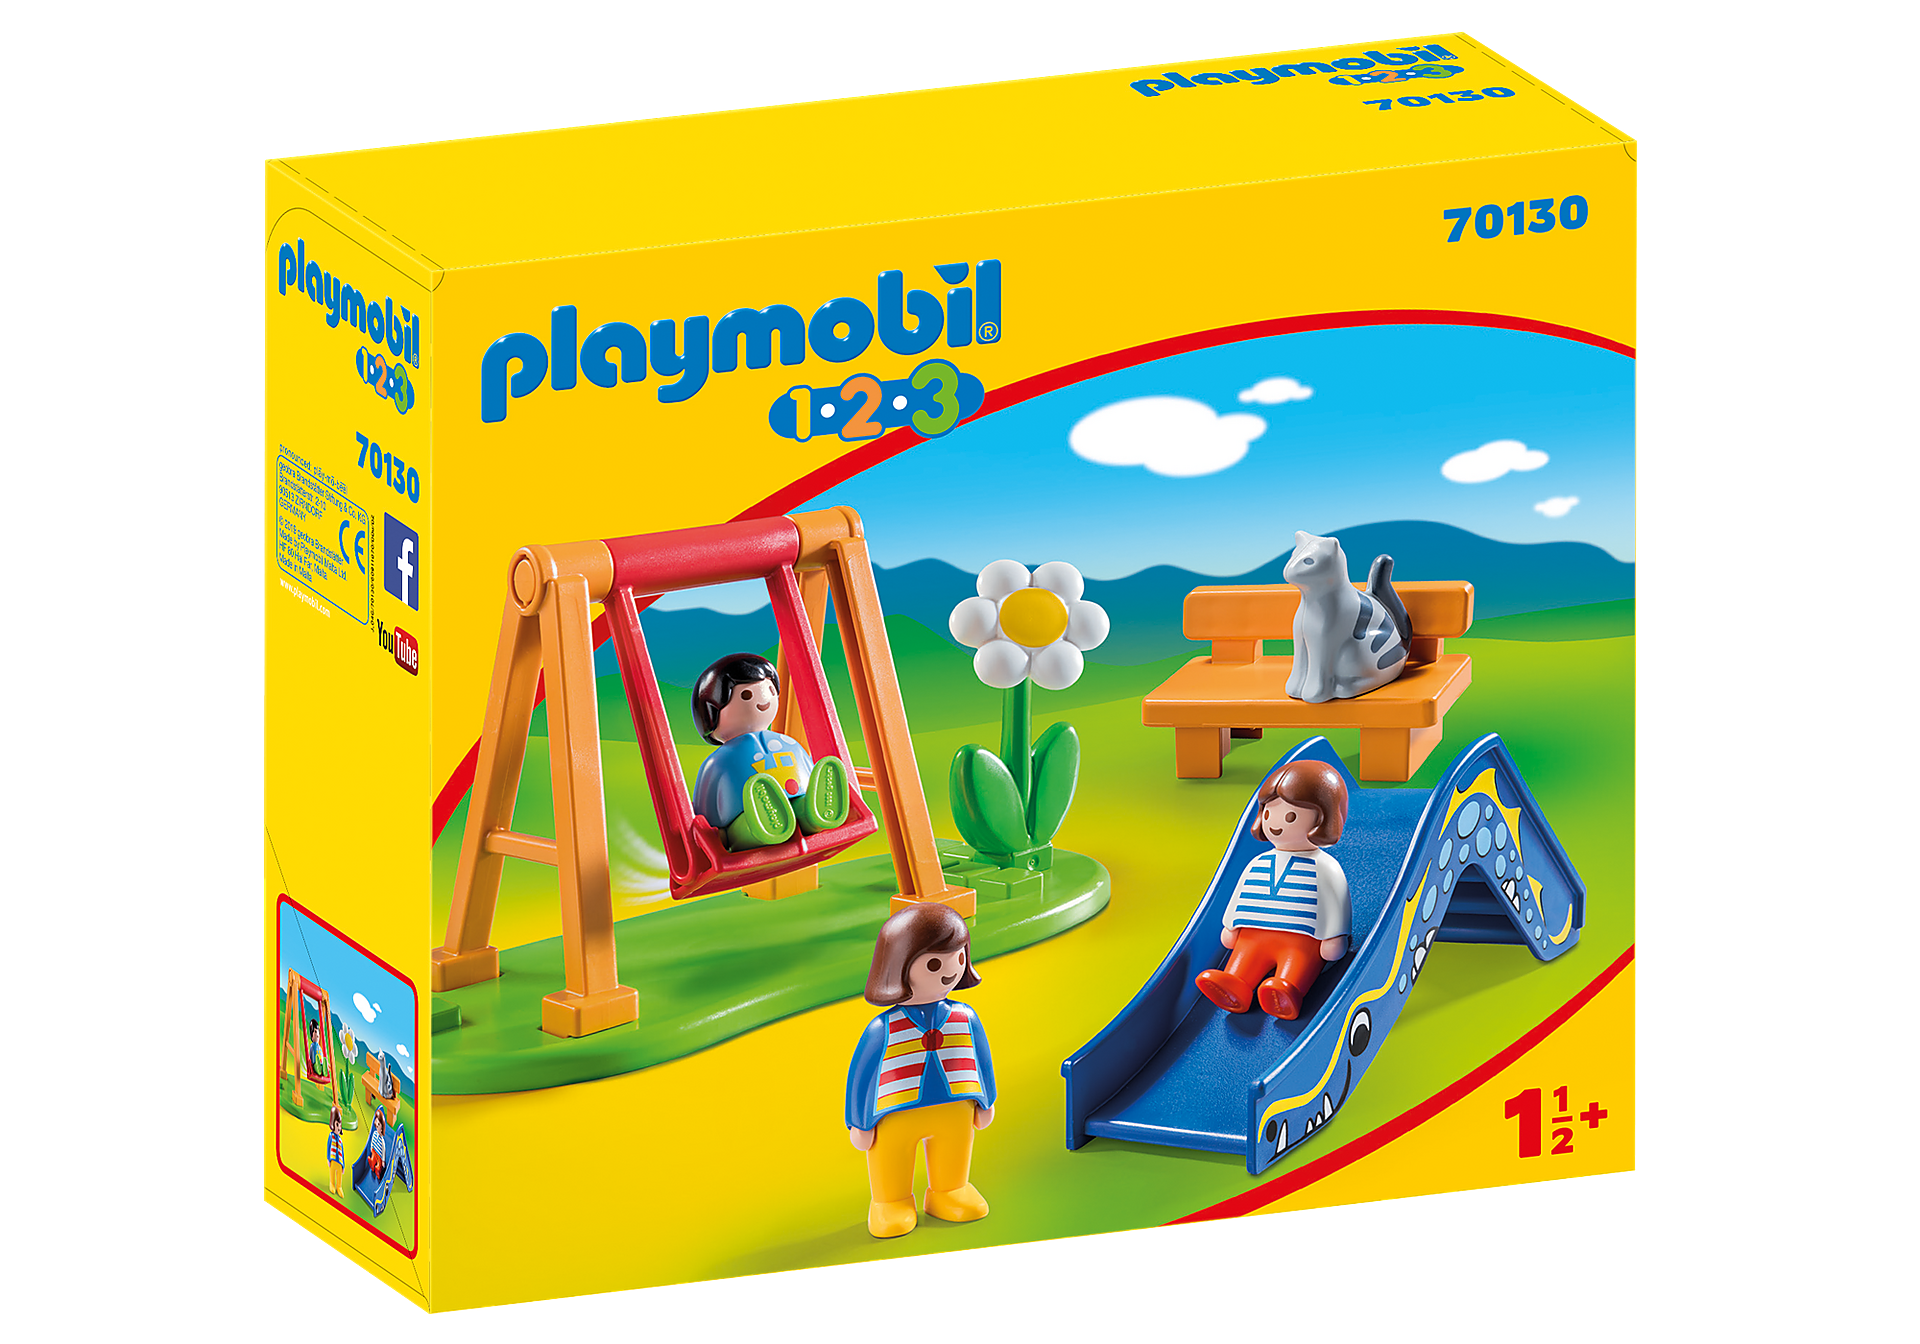 http://media.playmobil.com/i/playmobil/70130_product_box_front/Speeltuintje